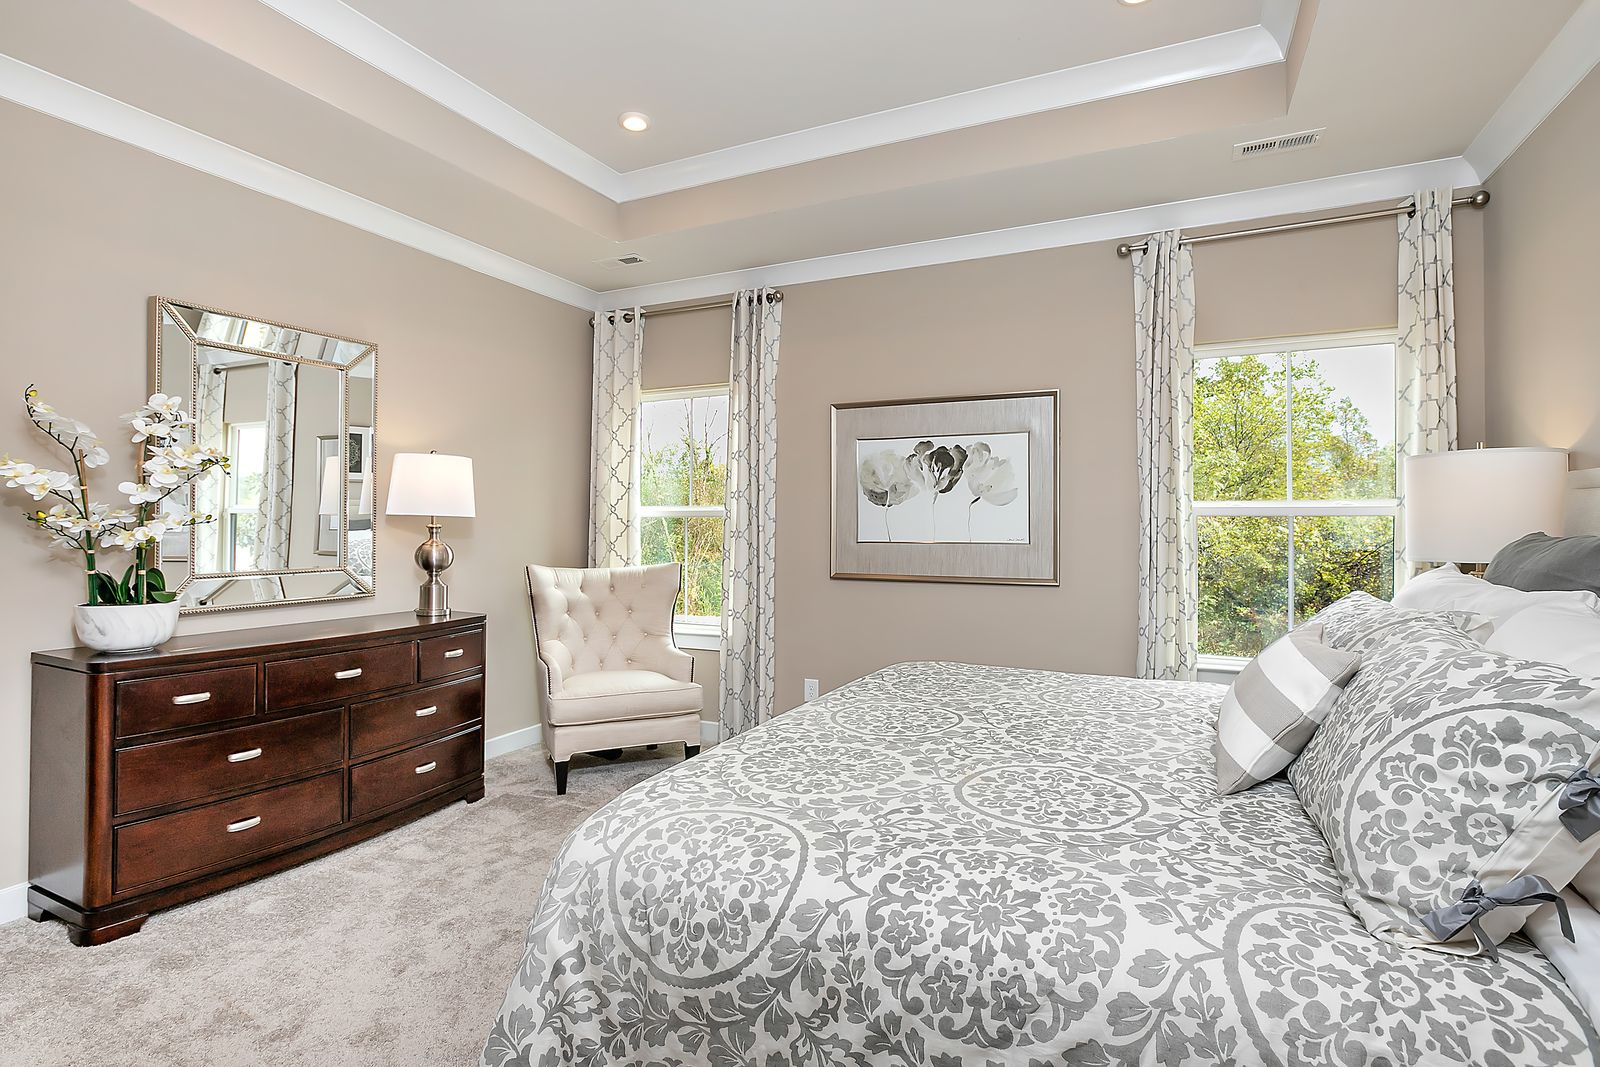 Bedroom featured in the Bramante Ranch By Ryan Homes in Chicago, IL